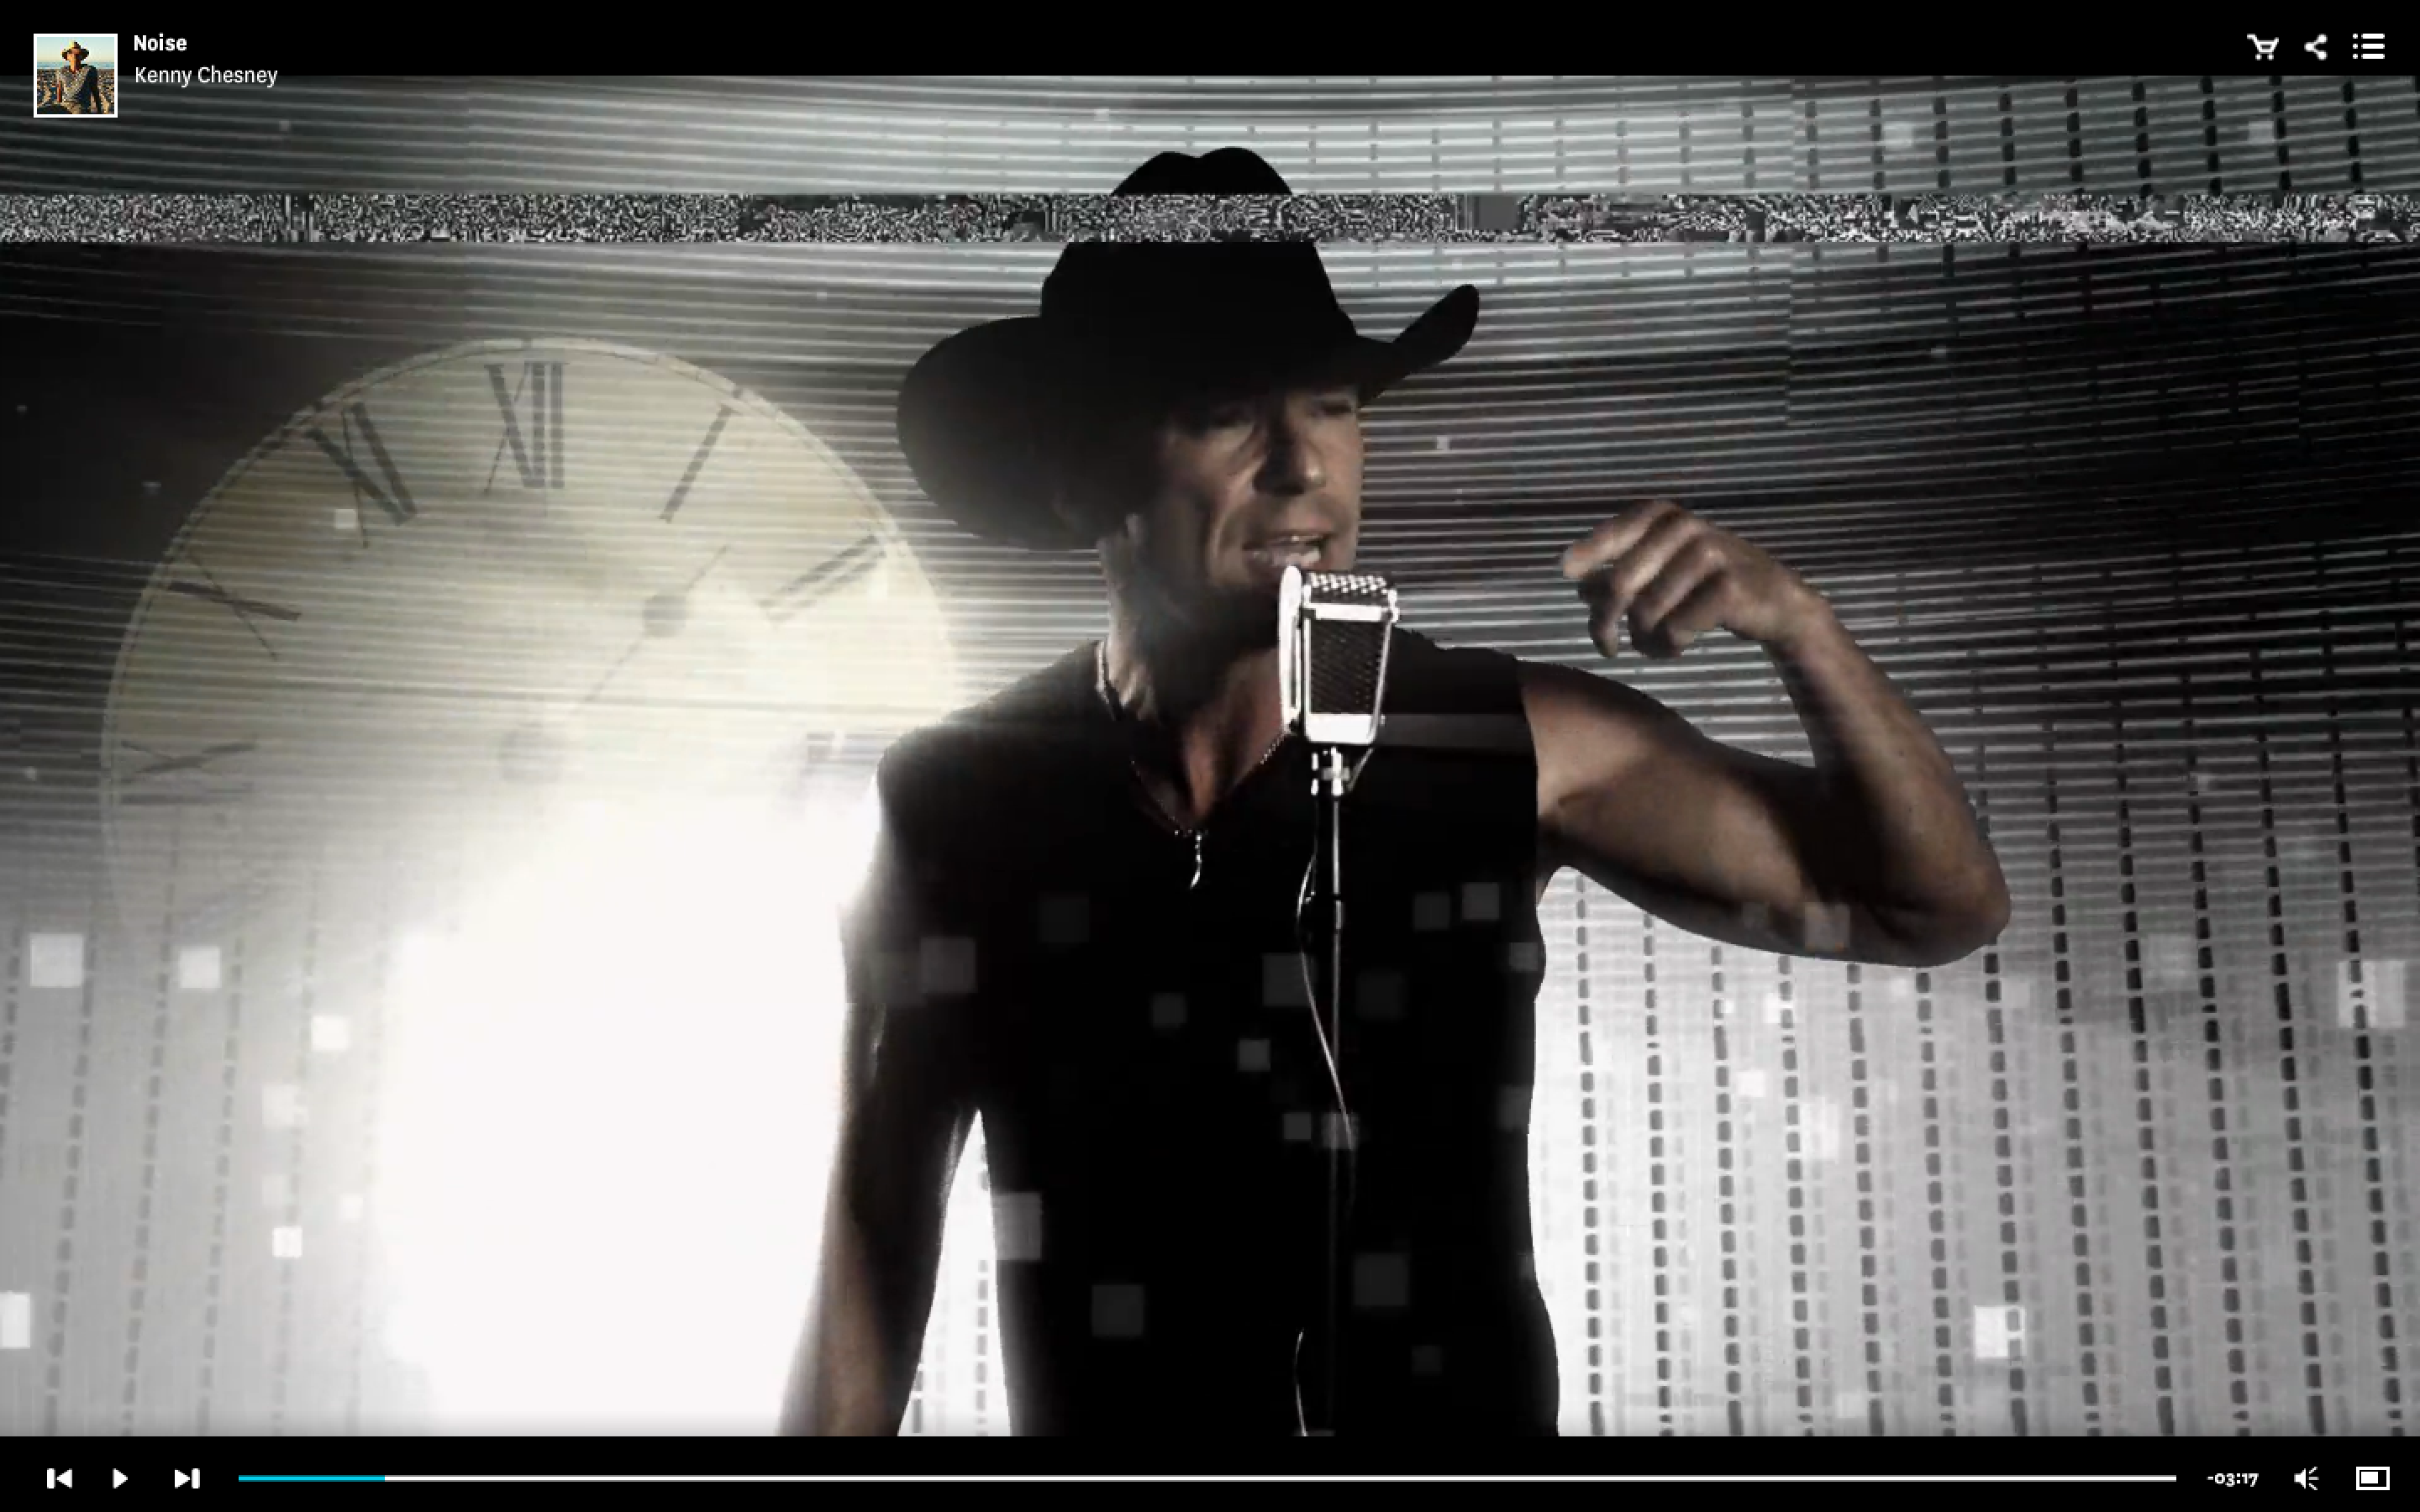 Watch Kenny Chesney\'s Chaotic \'Noise\' Video – Rolling Stone